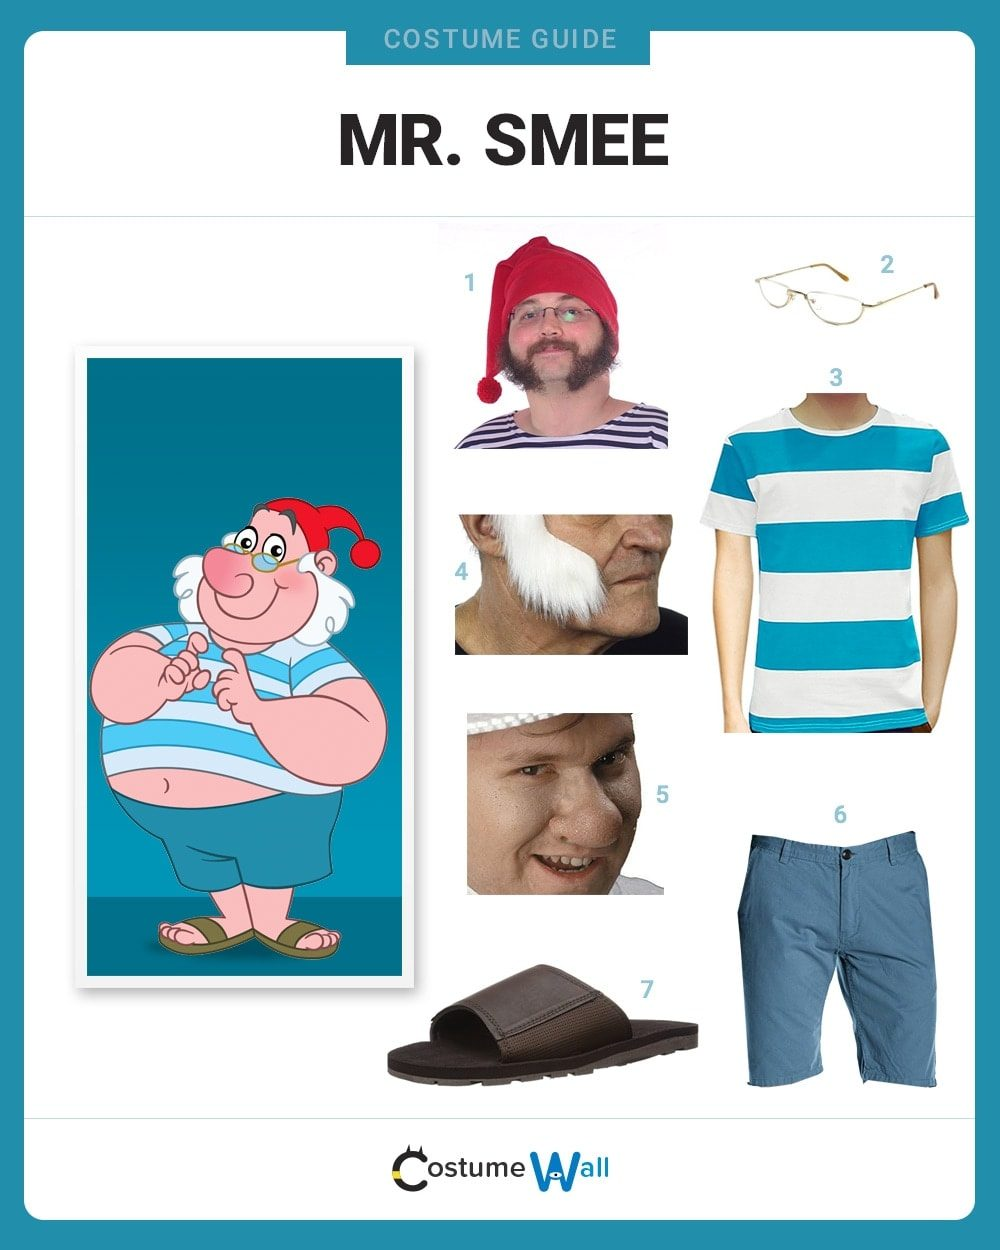 Mr. Smee Costume Guide